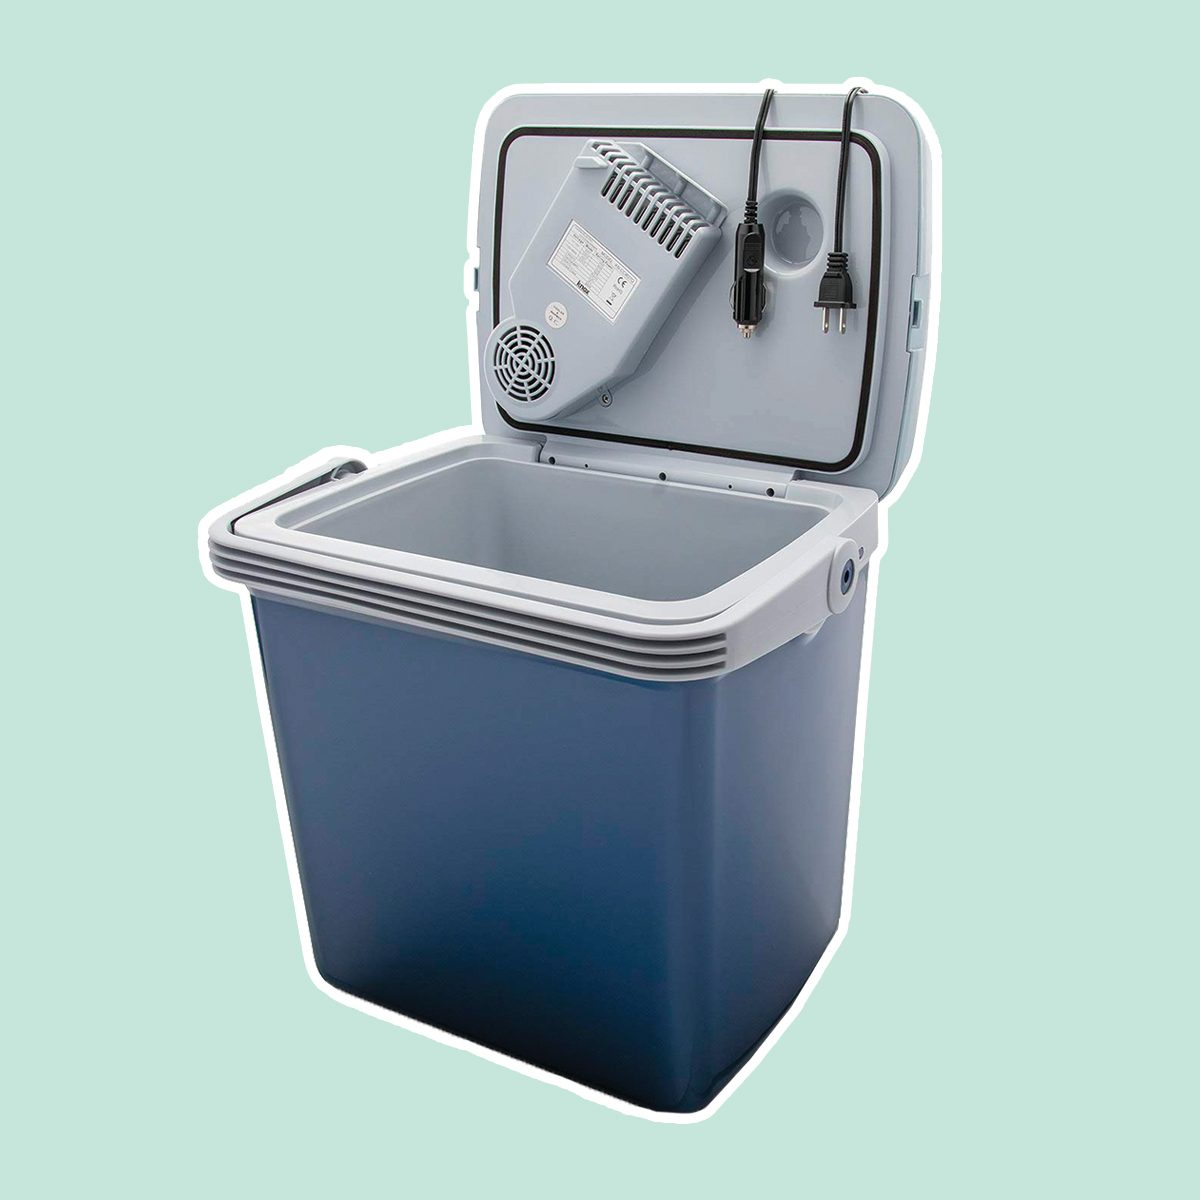 Knox Electric Cooler and Warmer for Car and Home with Automatic Locking Handle